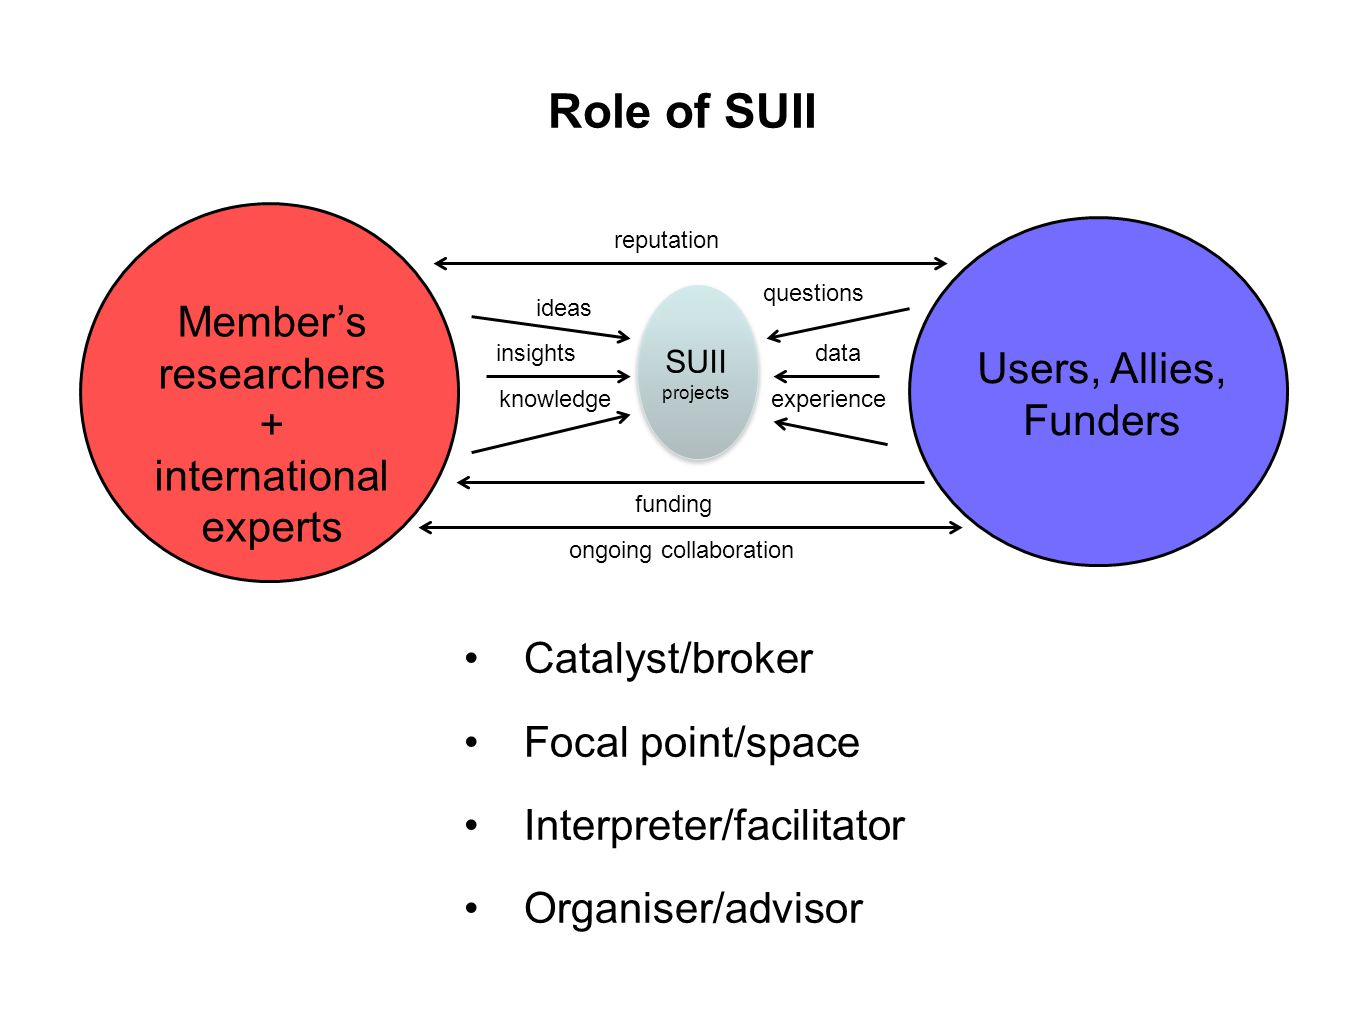 Role of SUII Members researchers + international experts Users, Allies, Funders SUII projects knowledge ideas data questions experience insights funding reputation Catalyst/broker Focal point/space Interpreter/facilitator Organiser/advisor ongoing collaboration